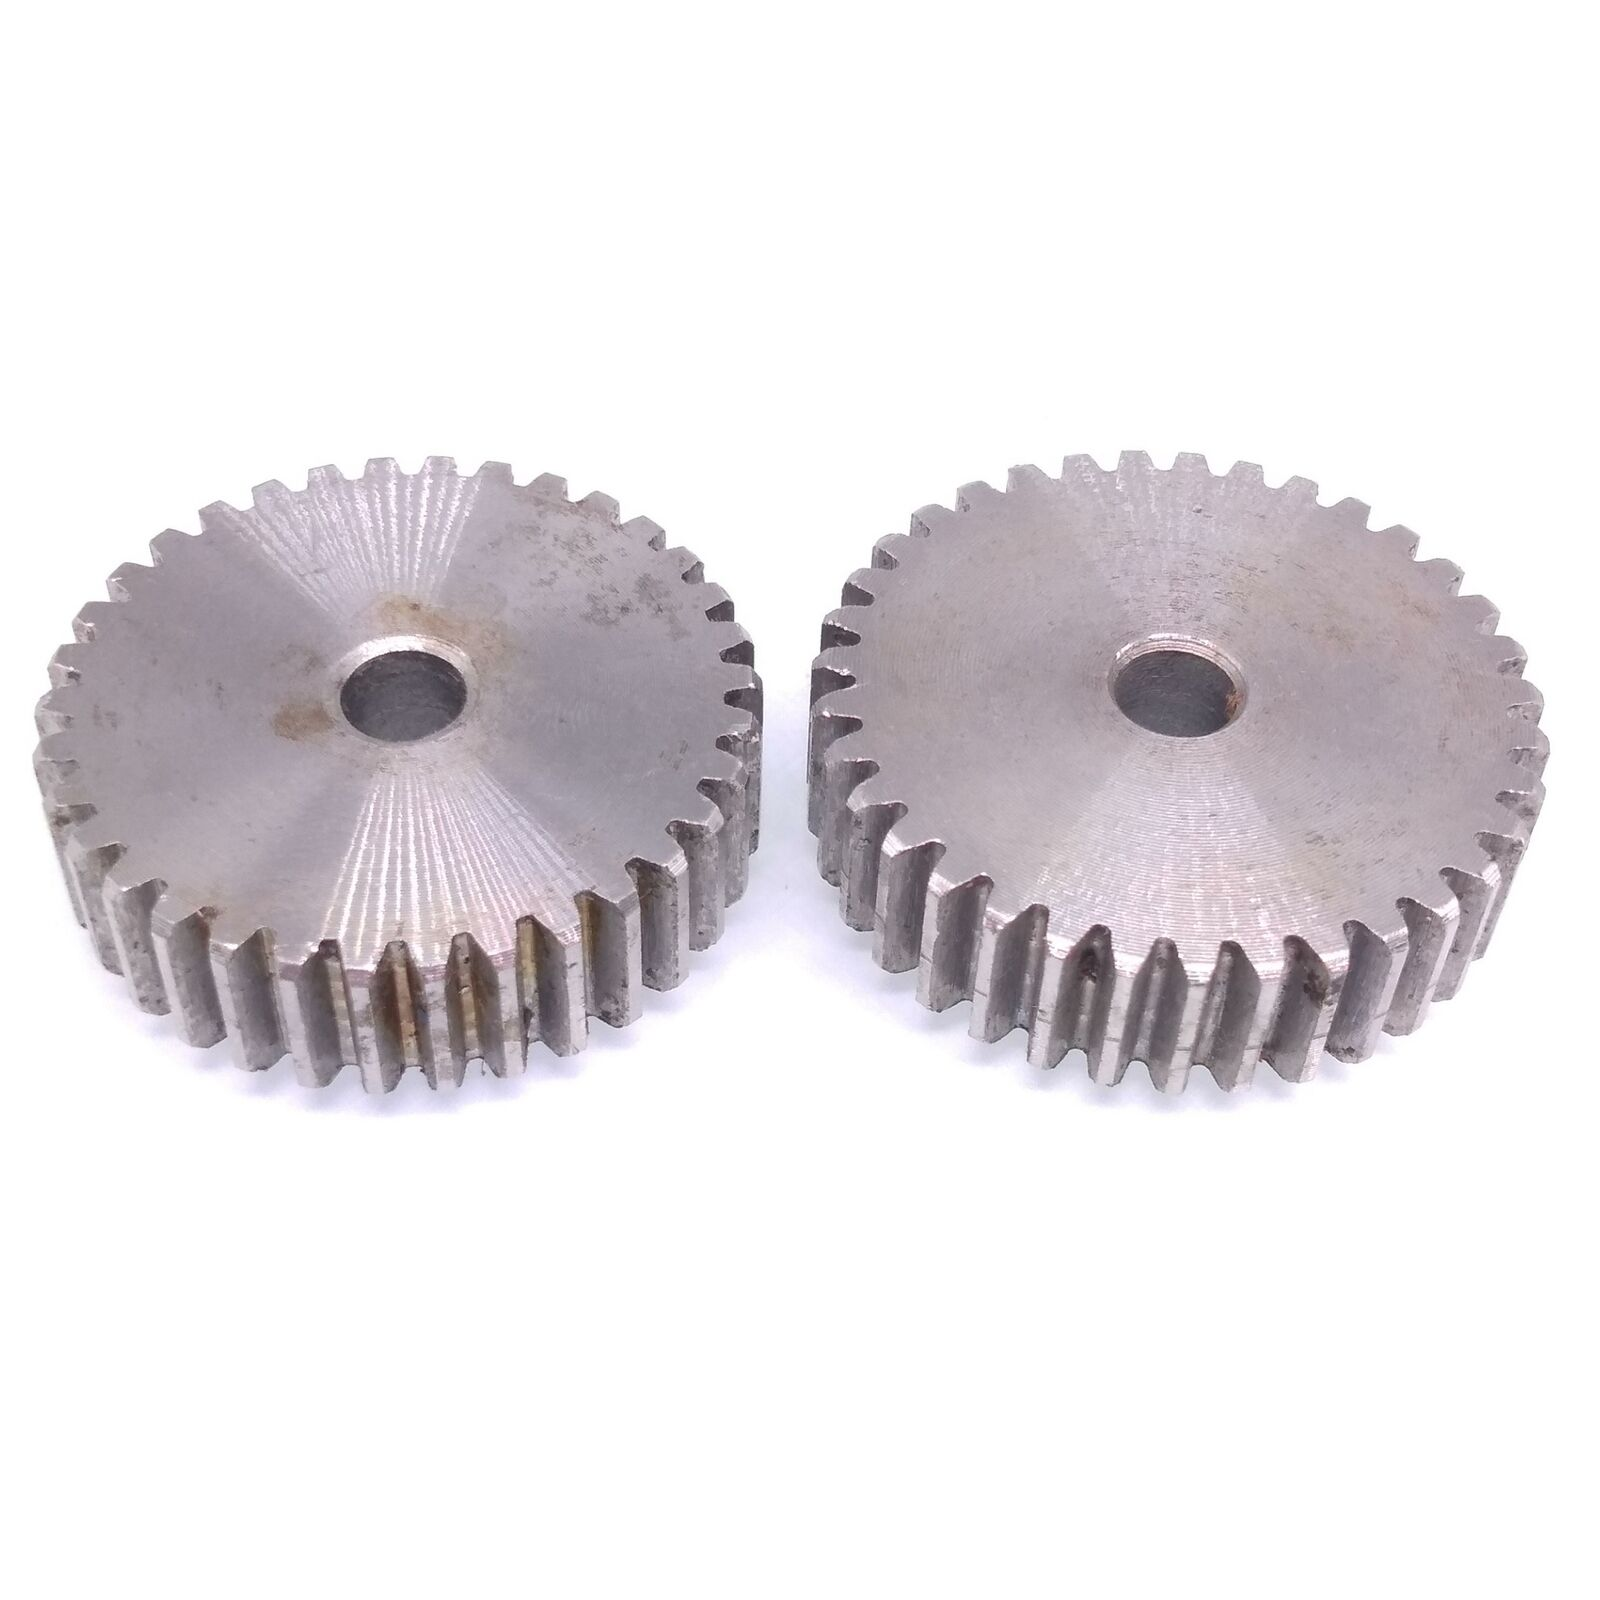 1 Mod 36T Spur Gear 45# Steel Pinion Gear Thickness 10mm Outer Dia 38mm x 1Pcs